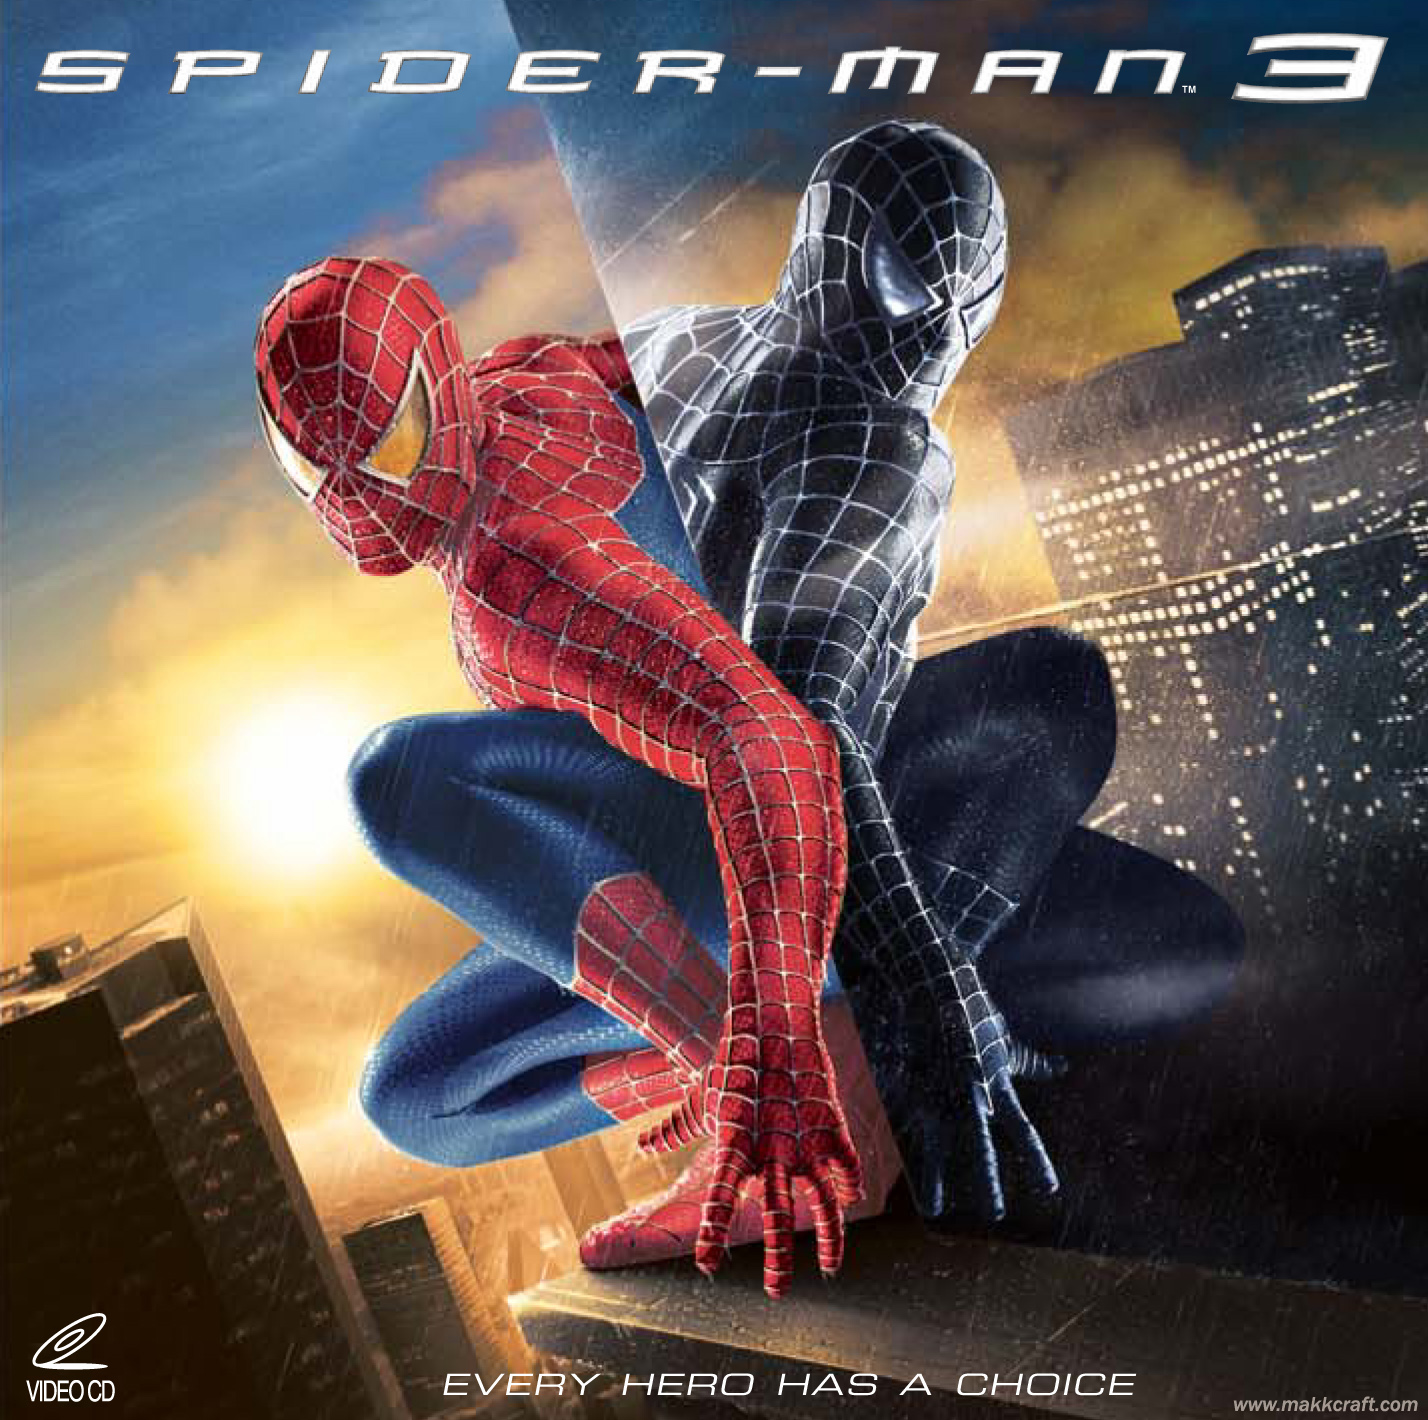 spider-man 3 (2007) | cinemassacre productions